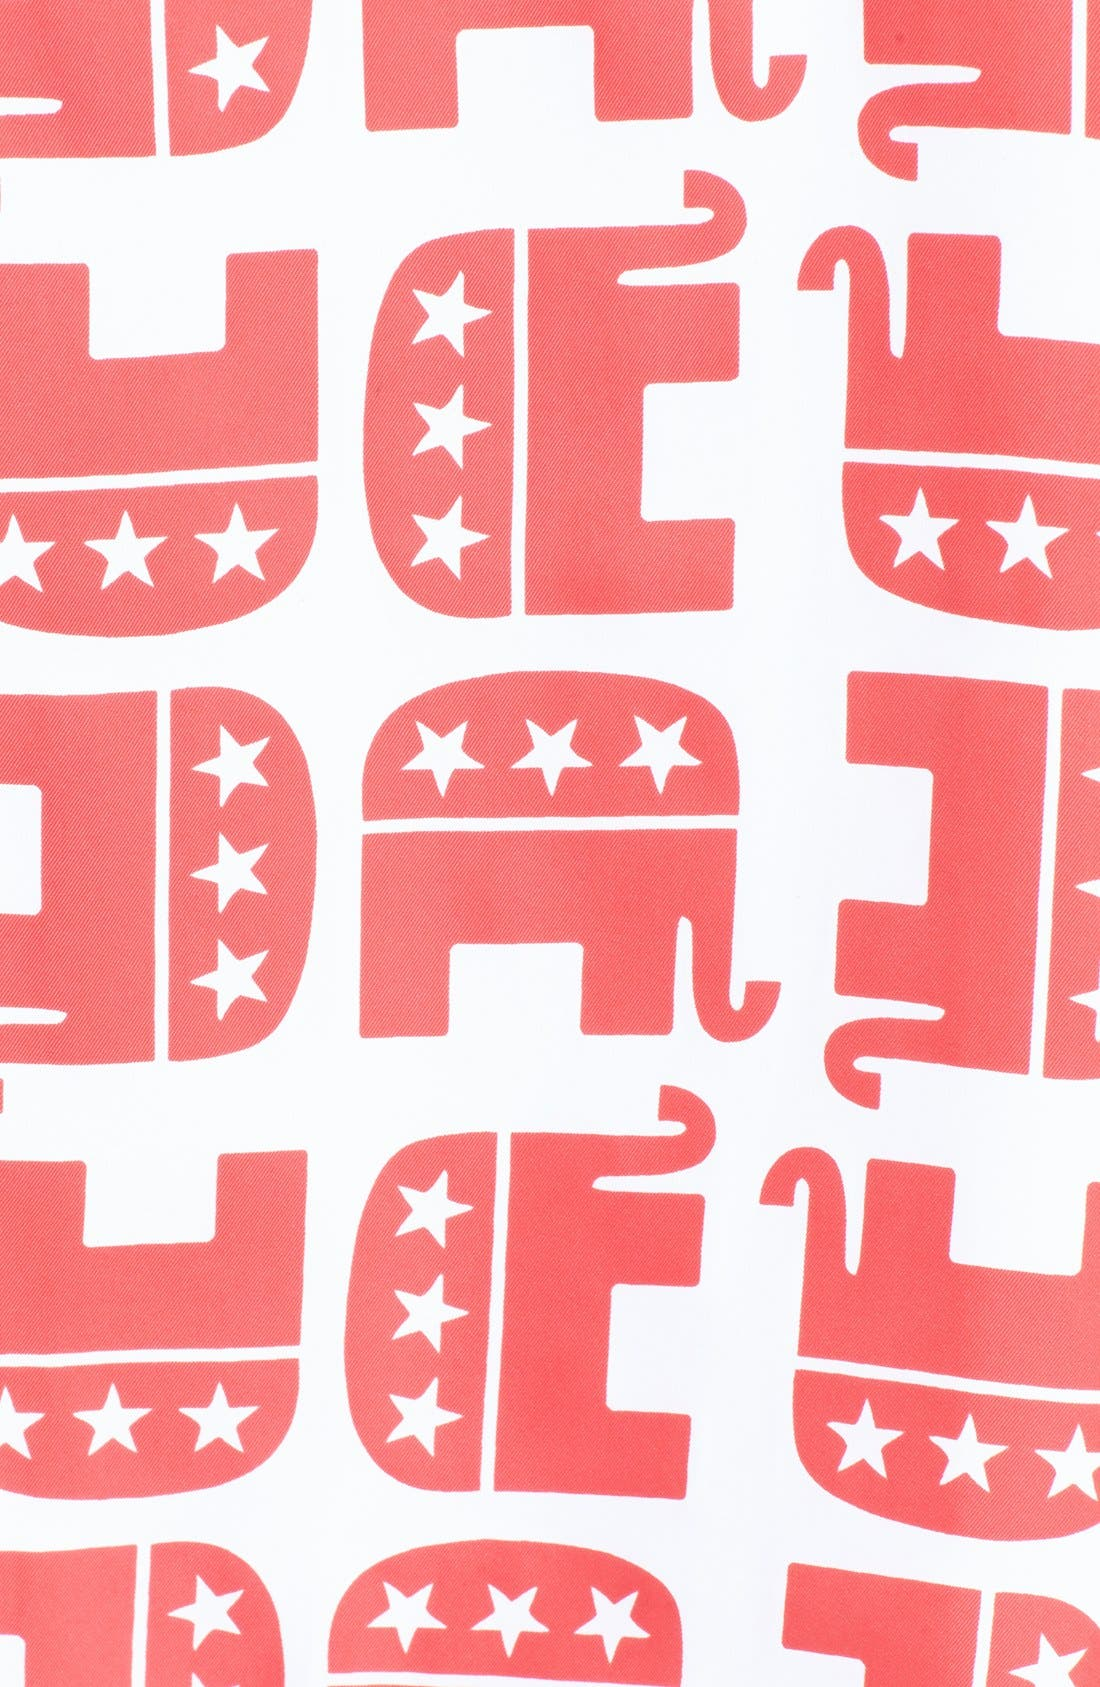 'Electoral Elephant' Square Scarf,                             Alternate thumbnail 3, color,                             629